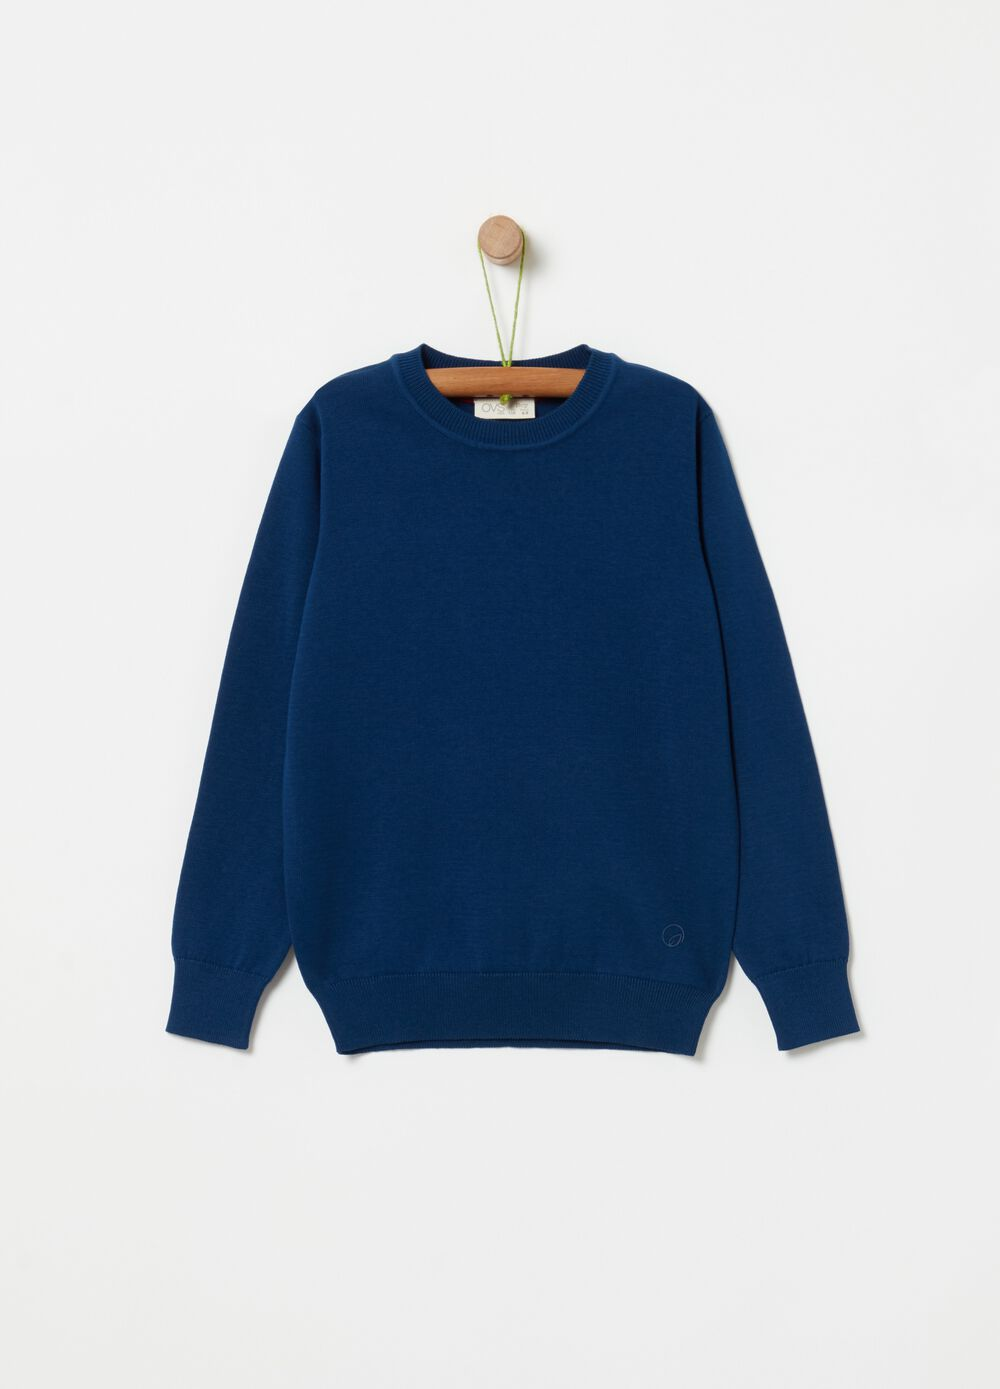 Pullover in 100% organic cotton